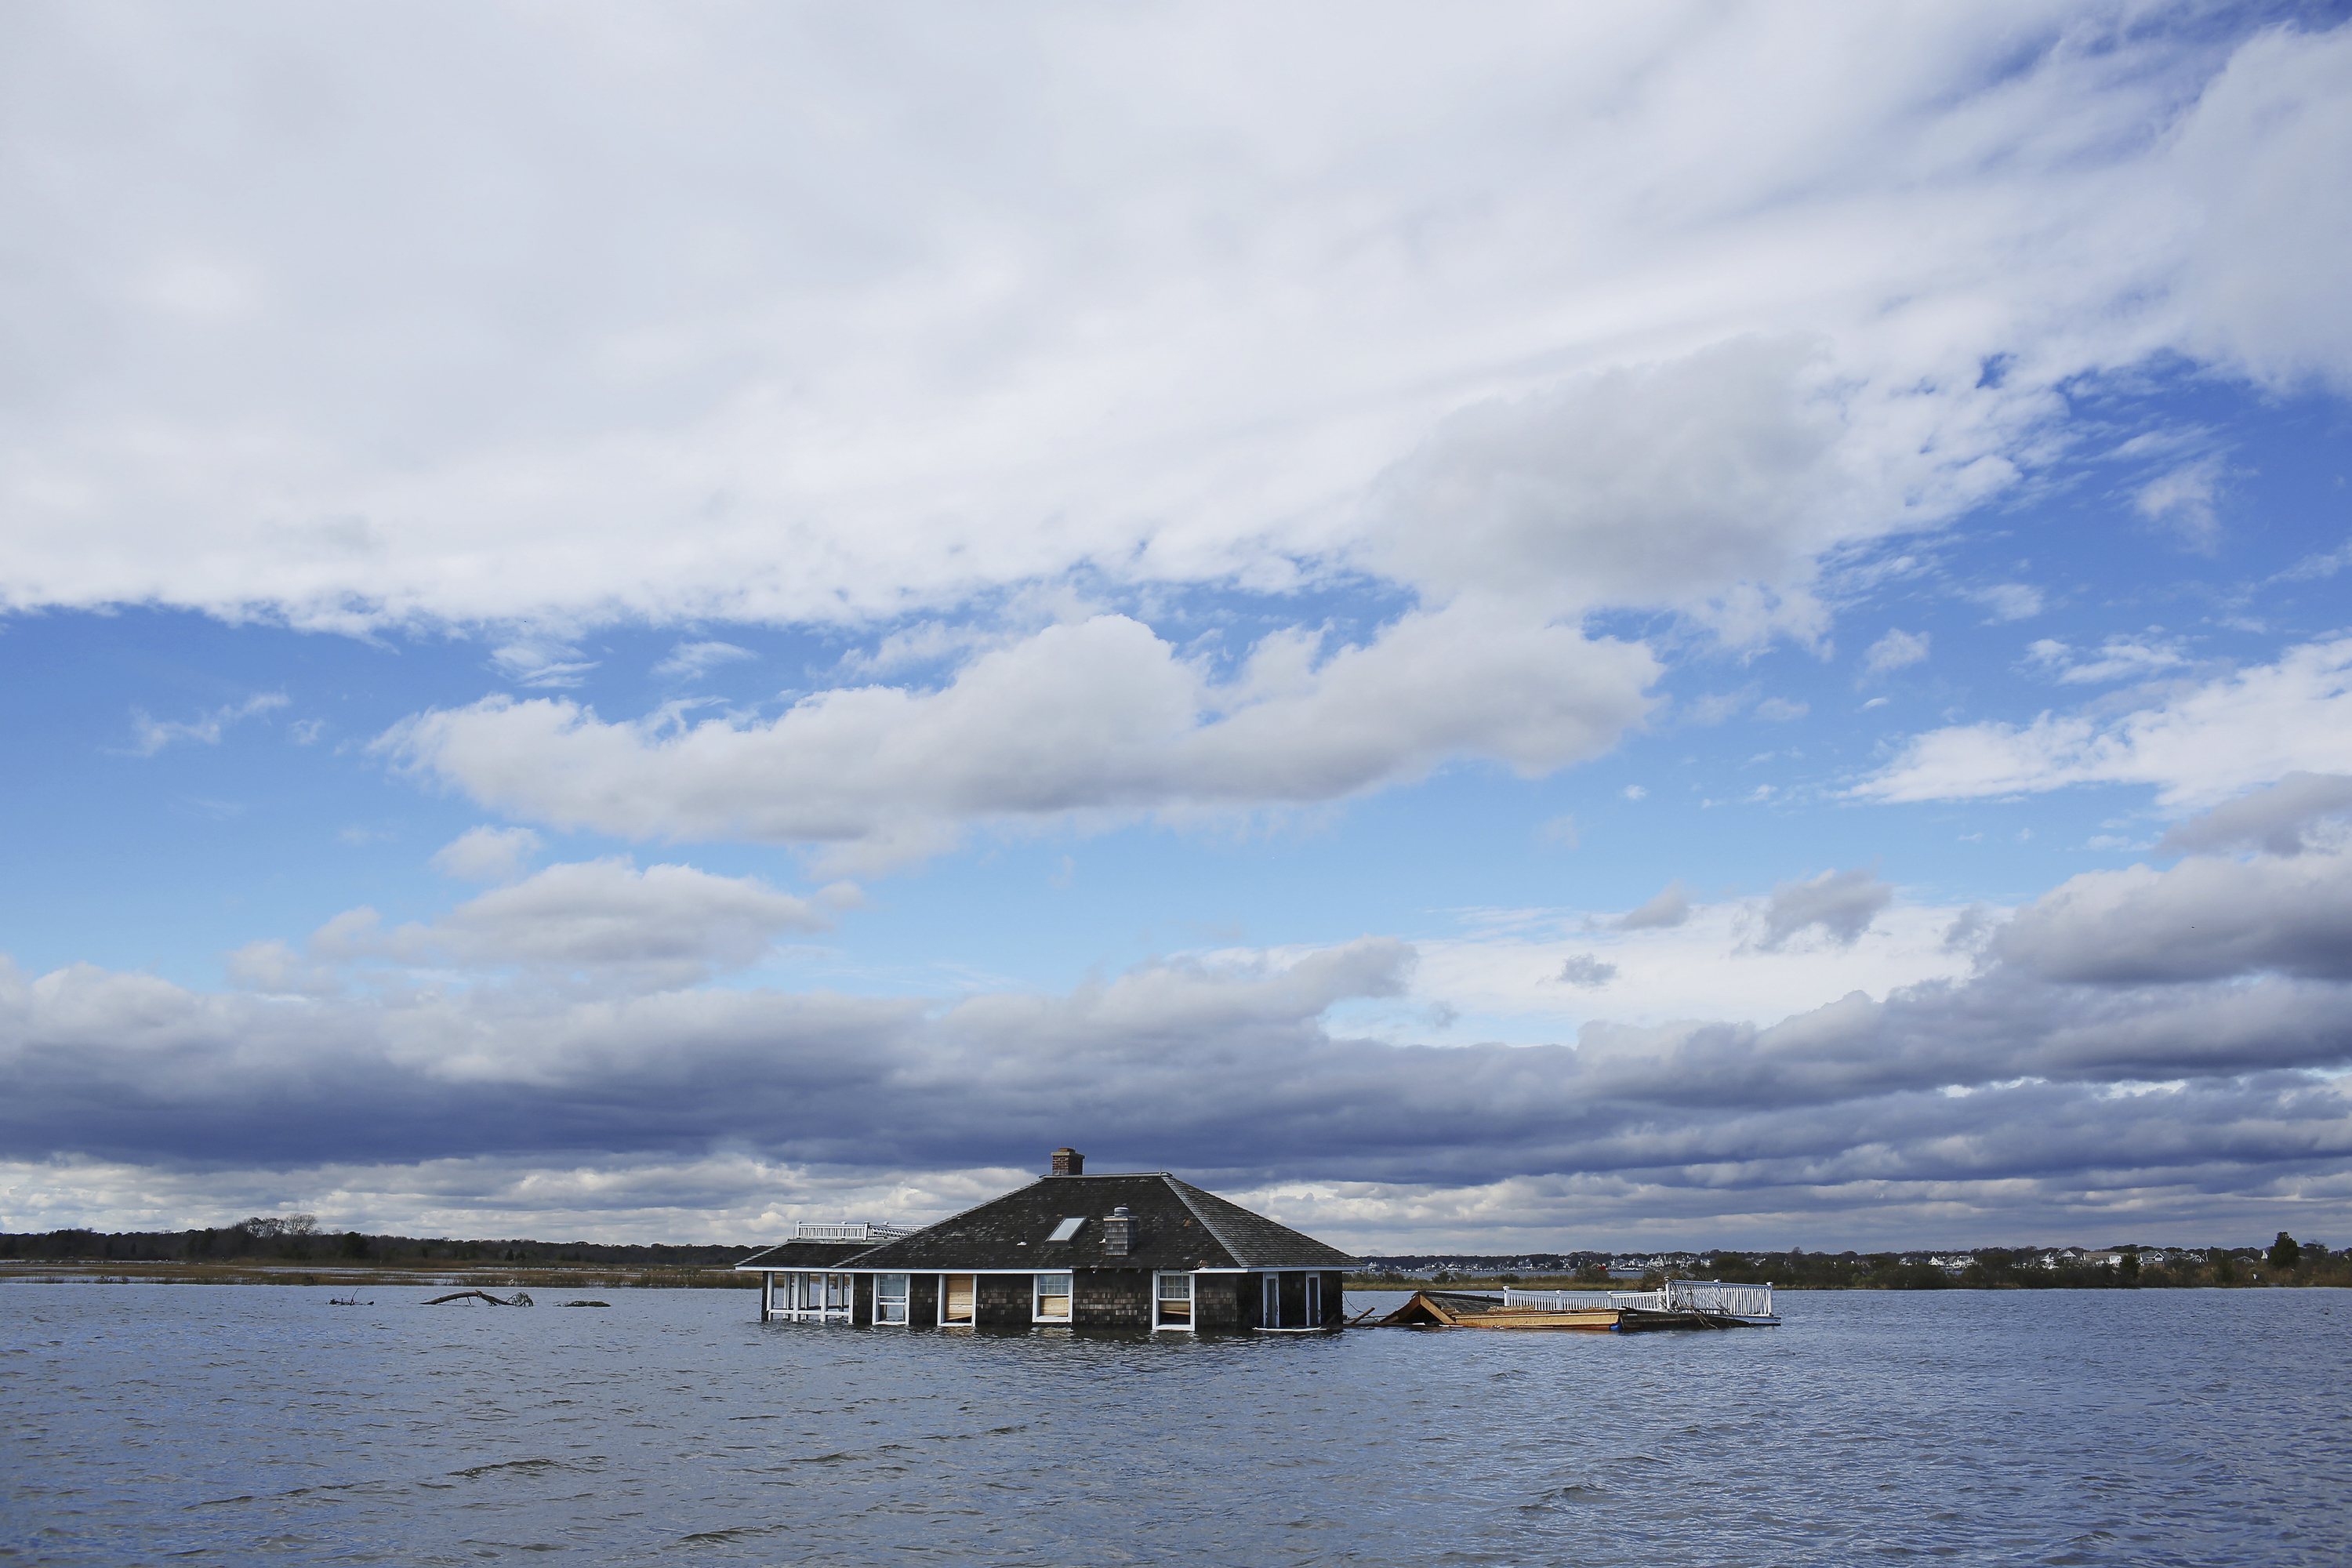 Deep trouble.A shore house near Mantoloking, N.J., sits in a lagoon after Superstorm Sandy in October 2012.